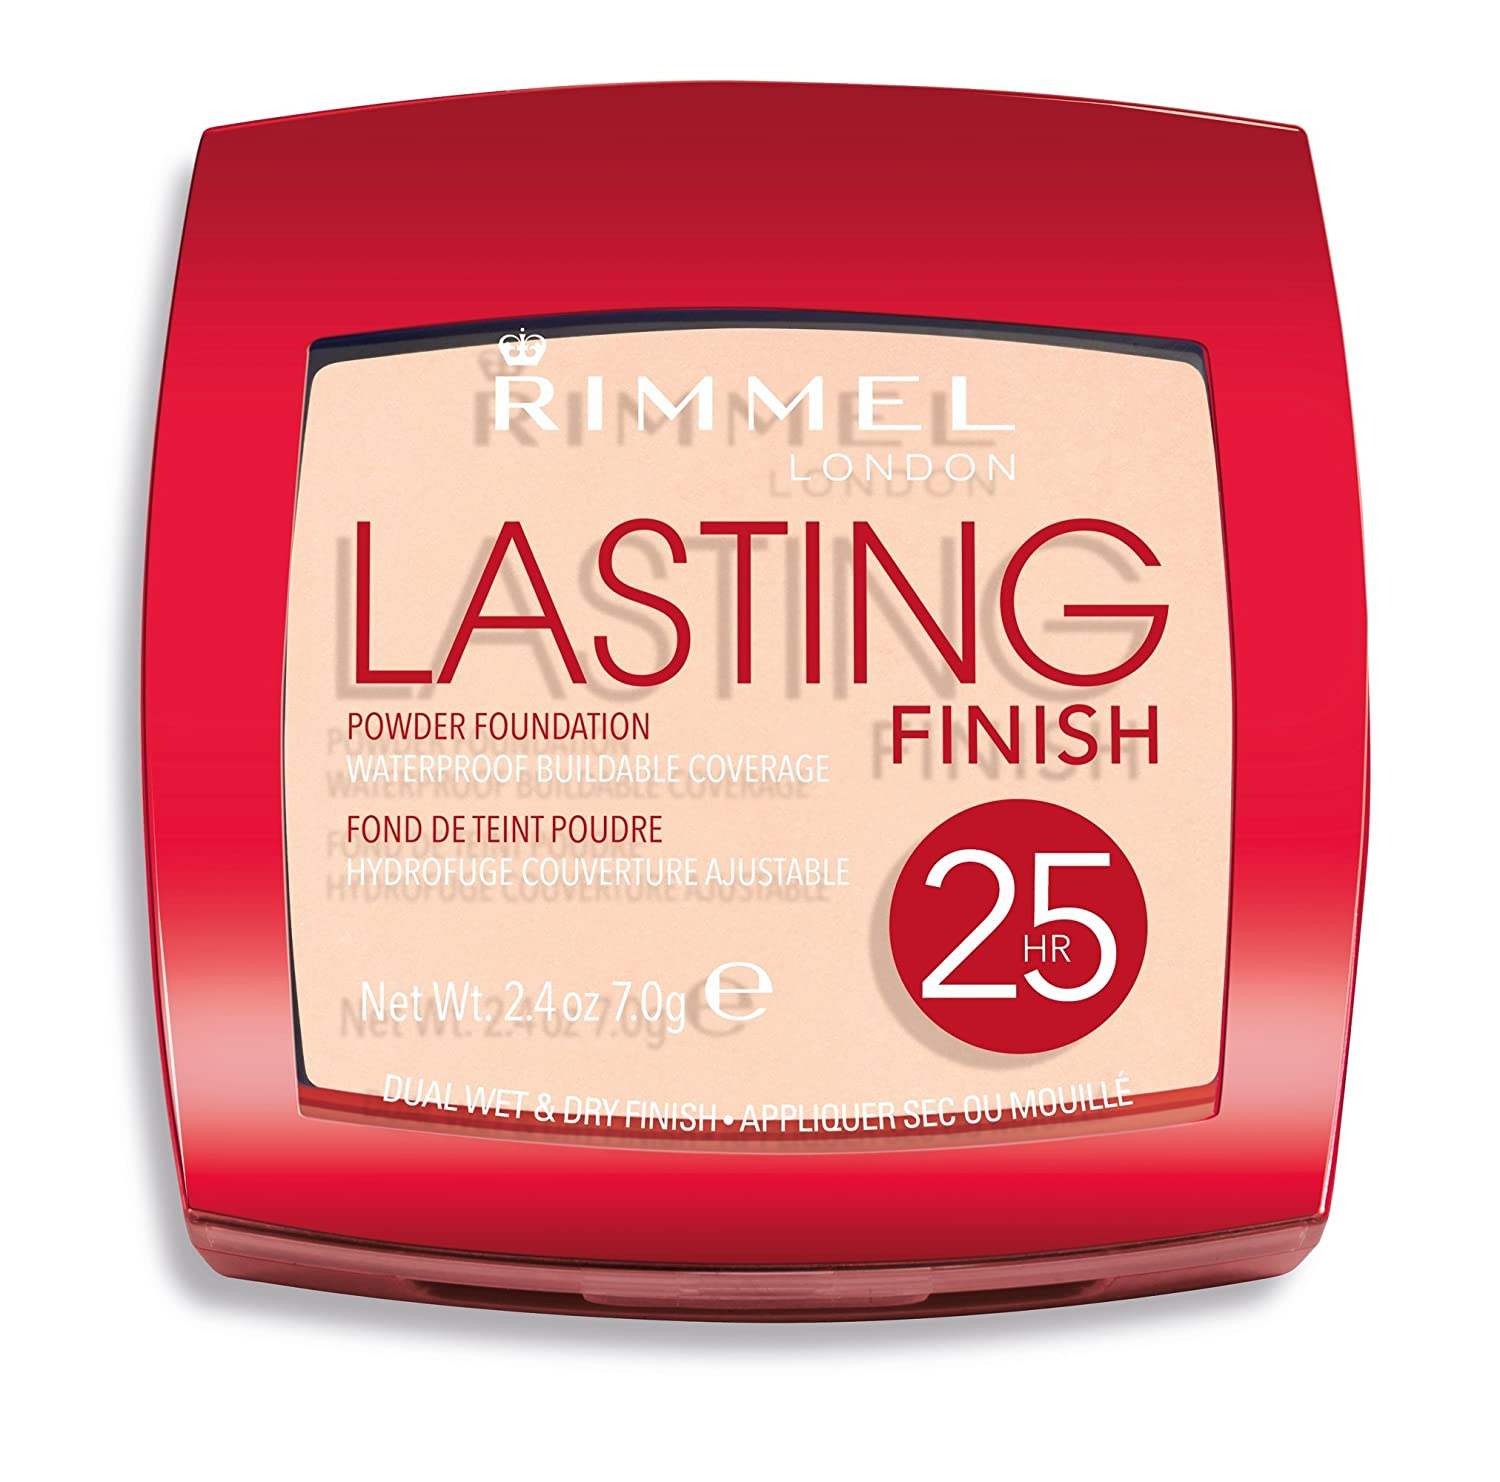 Rimmel Lasting Finish 25 Hour Powder Number 002, Soft Beige: Amazon.co.uk: Beauty